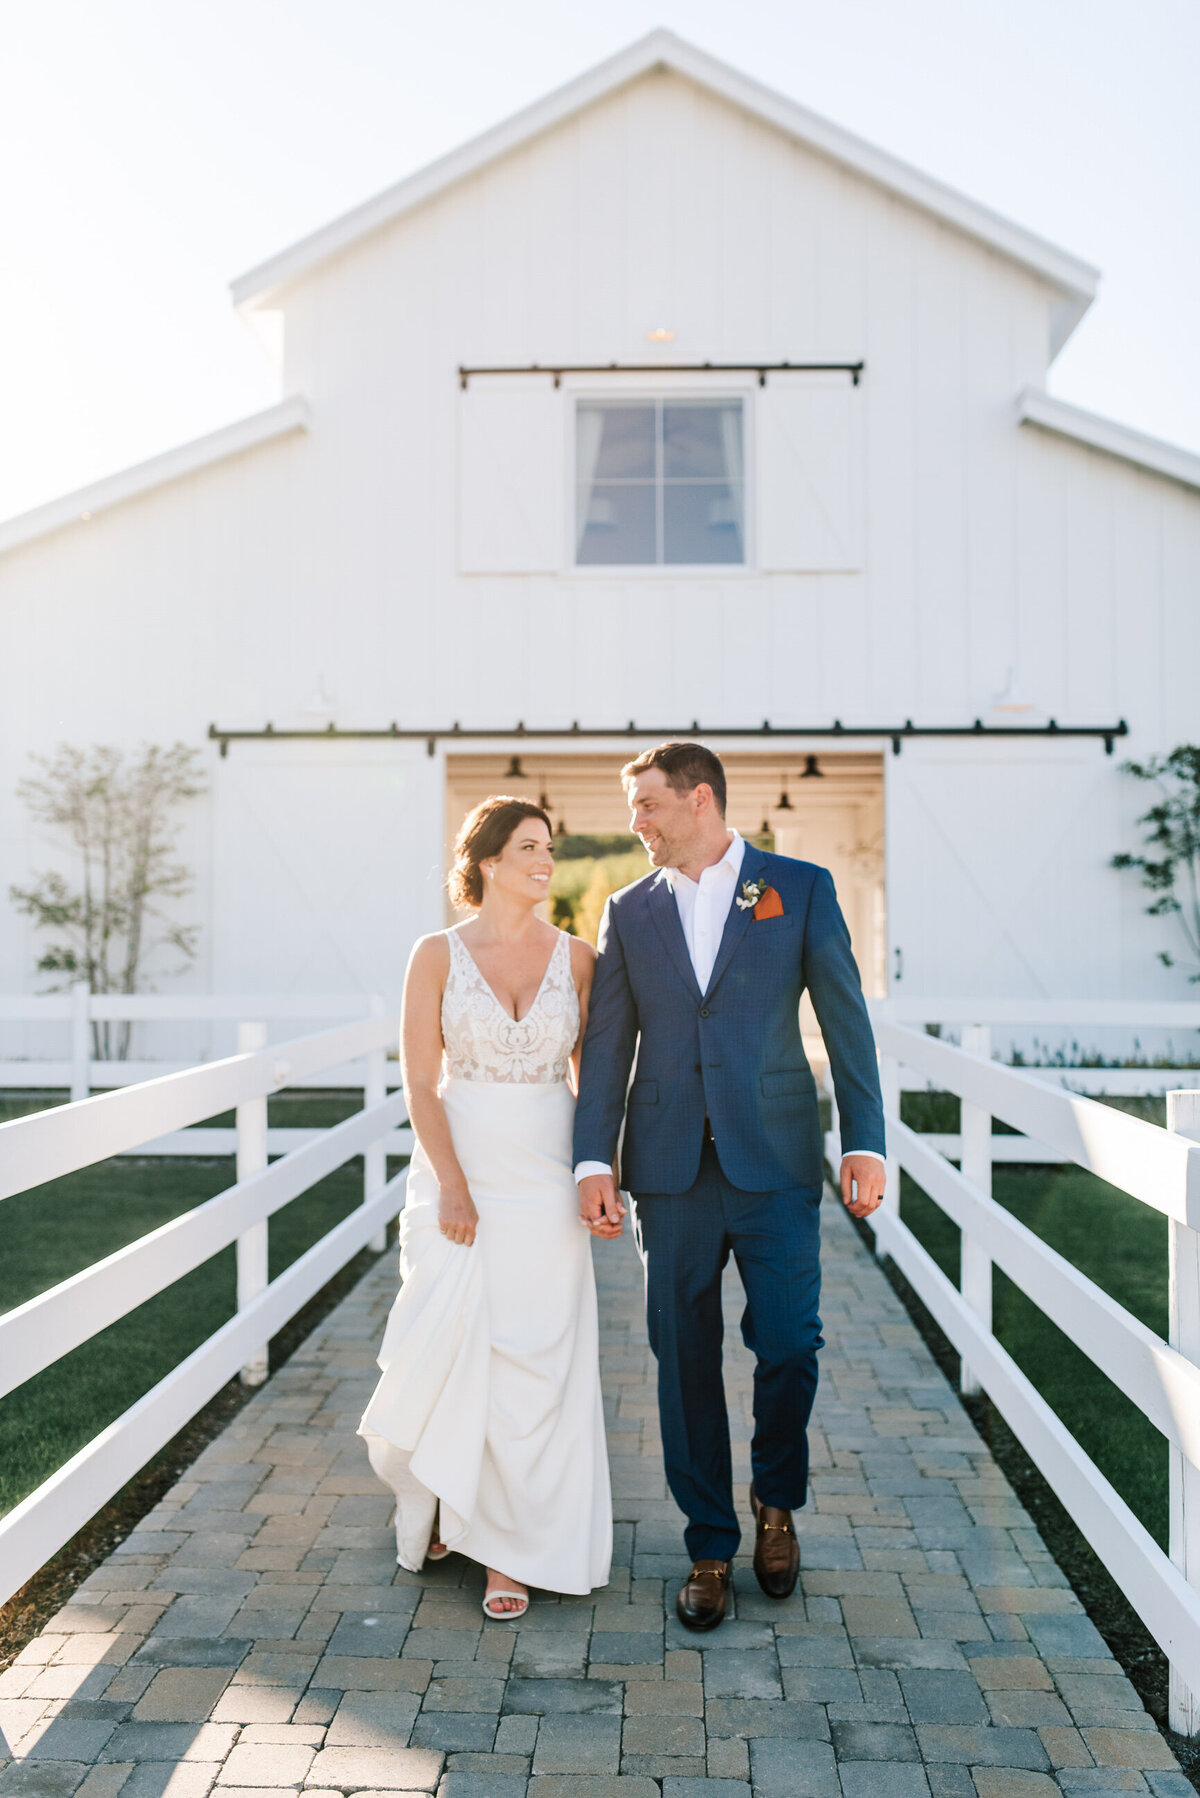 Bride and groom walking in front of white barn at sunset during Harmony Meadows wedding